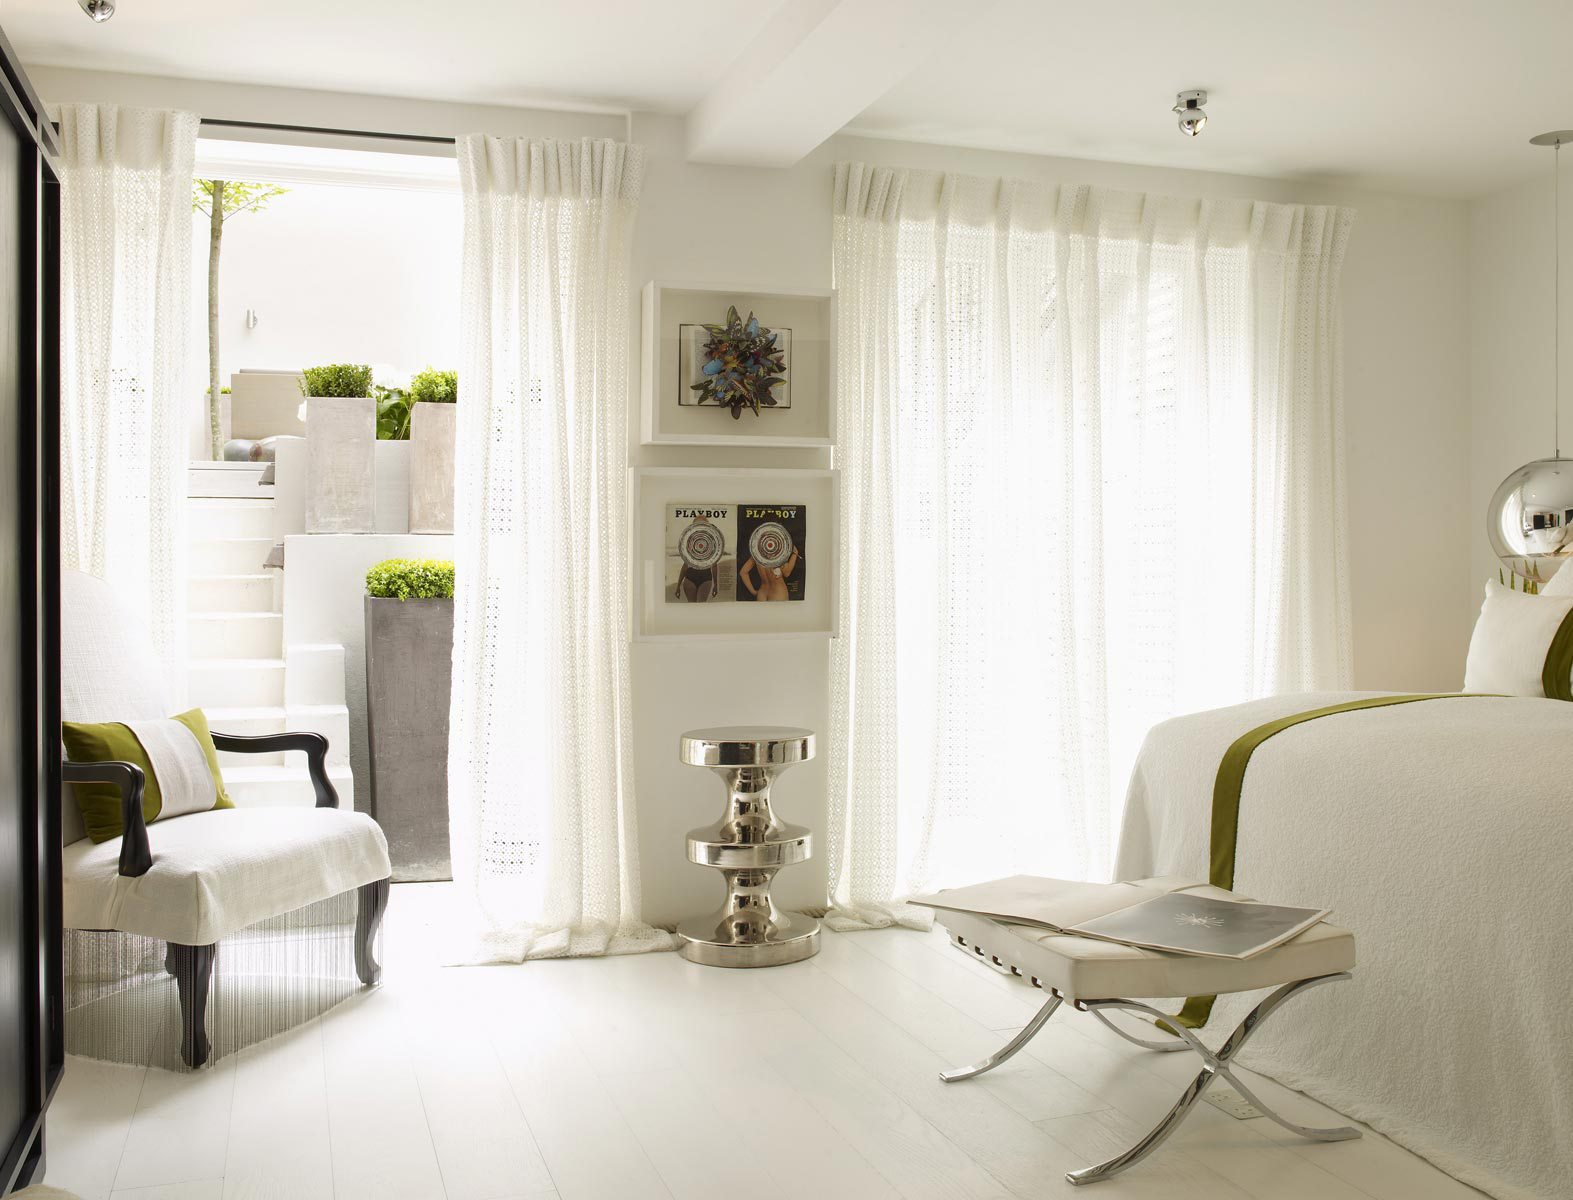 Master Bedroom Inspiring Master Bedroom Ideas By Kelly Hoppen the town house london